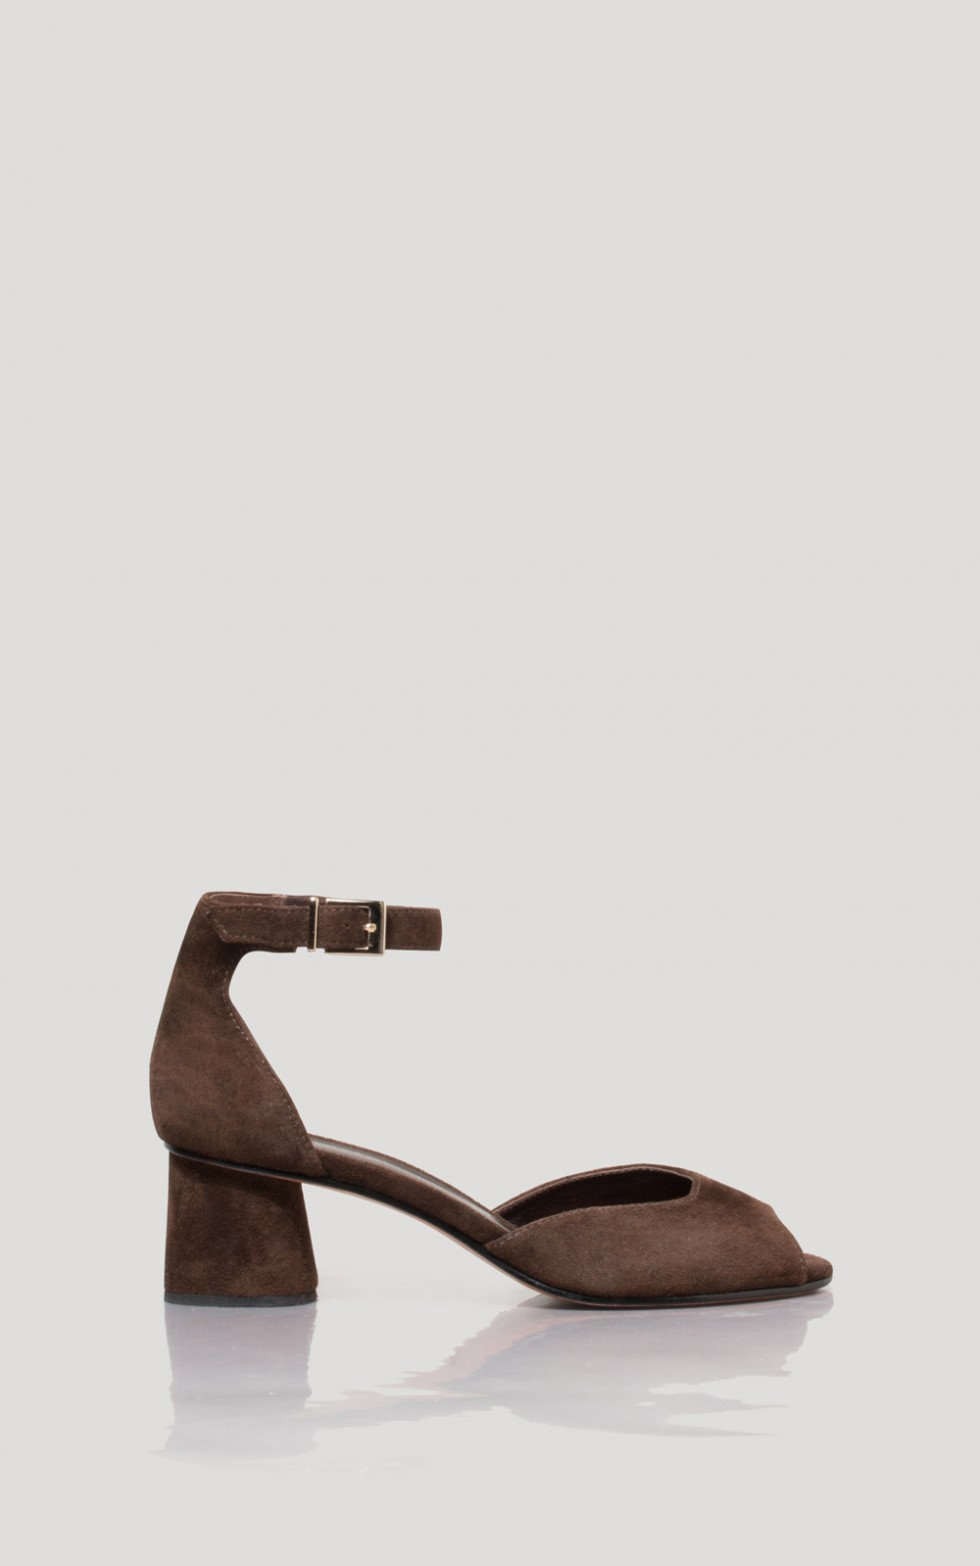 RACHEL COMEY Bodie - Chocolate Suede at SPRING